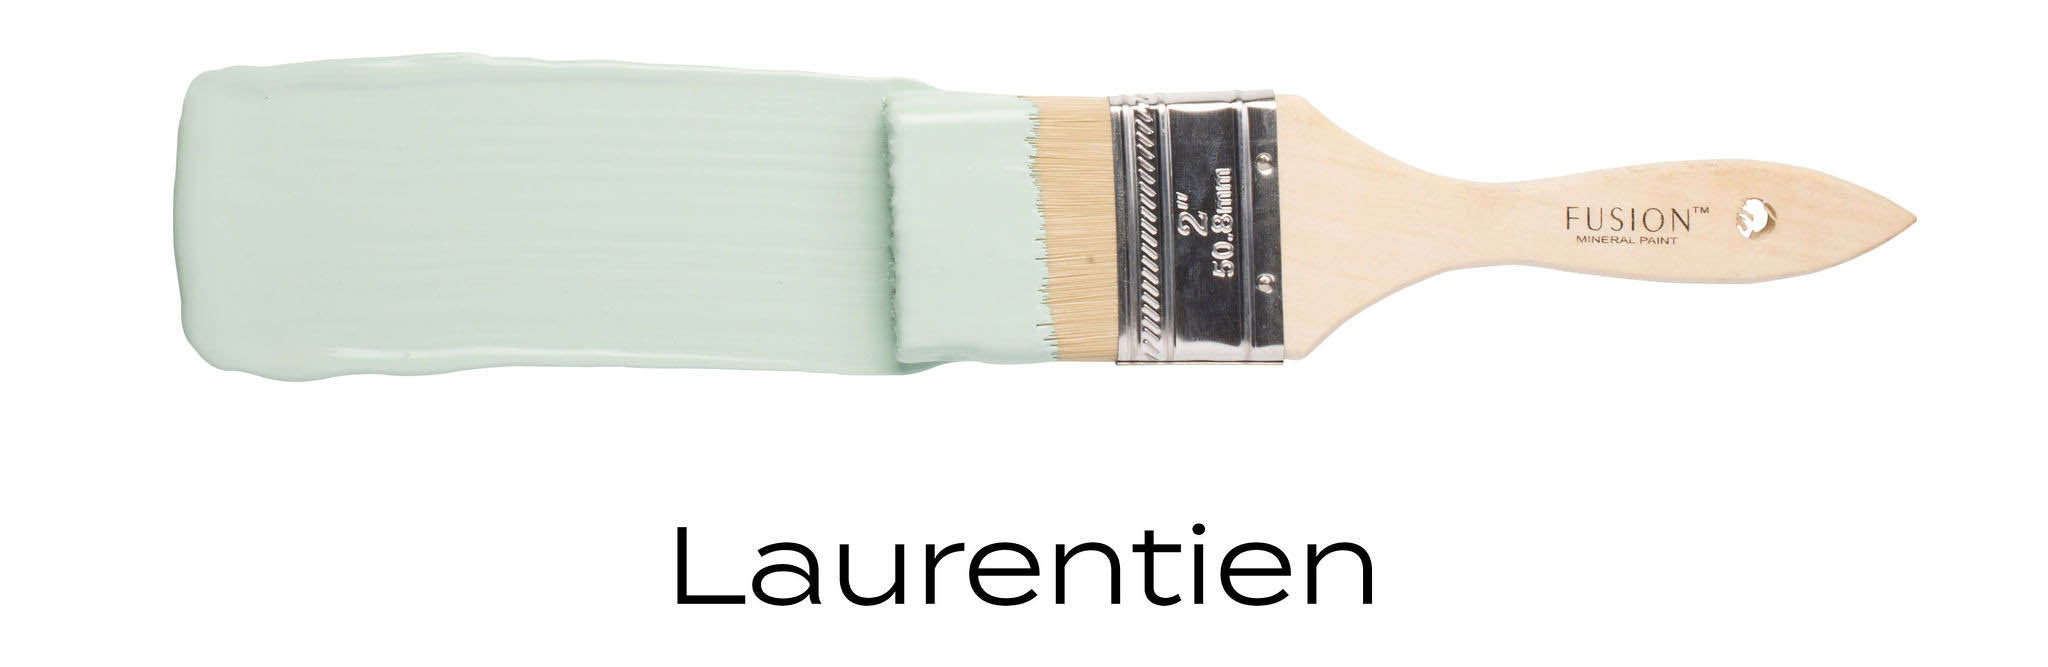 laurentien duckegg coloured furniture paint, fusion mineral paint colour